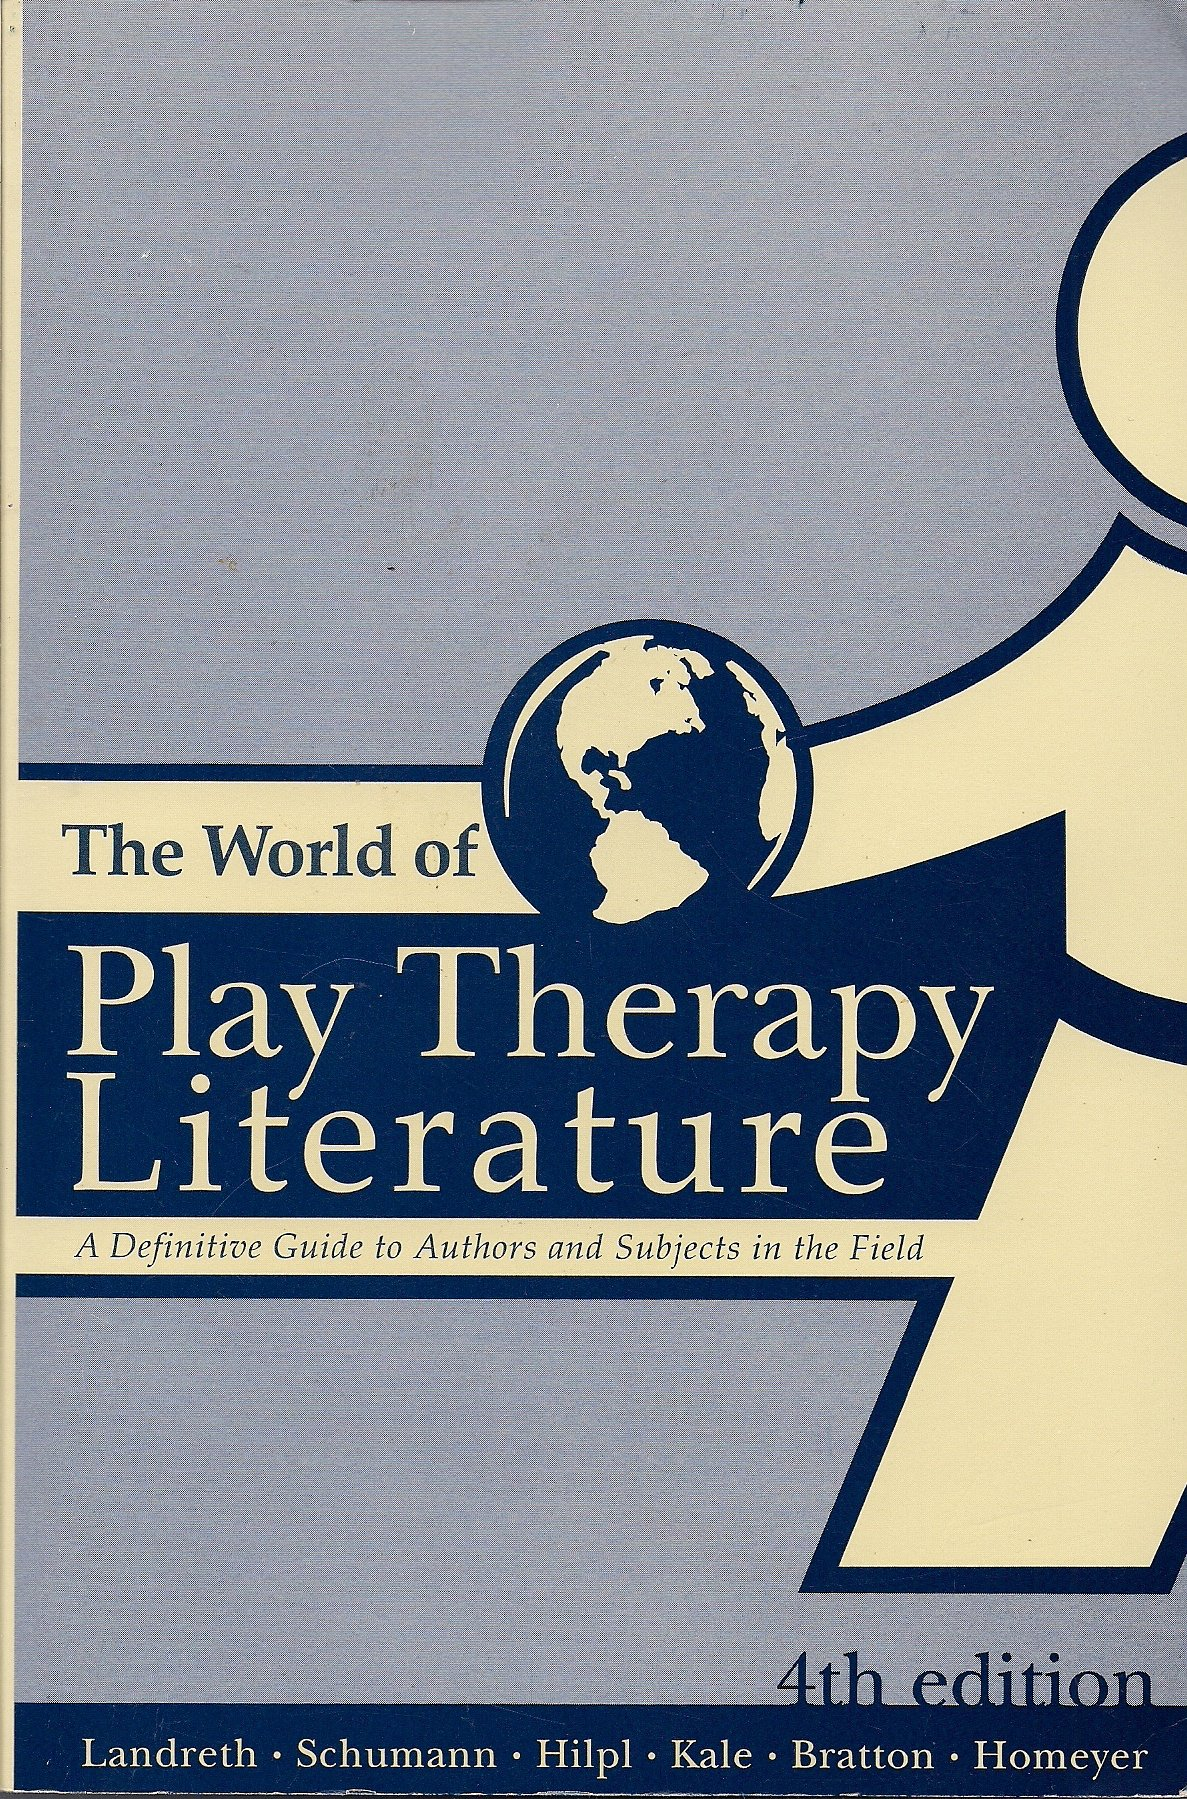 Read Online The World of Play Therapy Literature: A Difinitive Guide to Authors and Subjects in the Field 4th Edition pdf